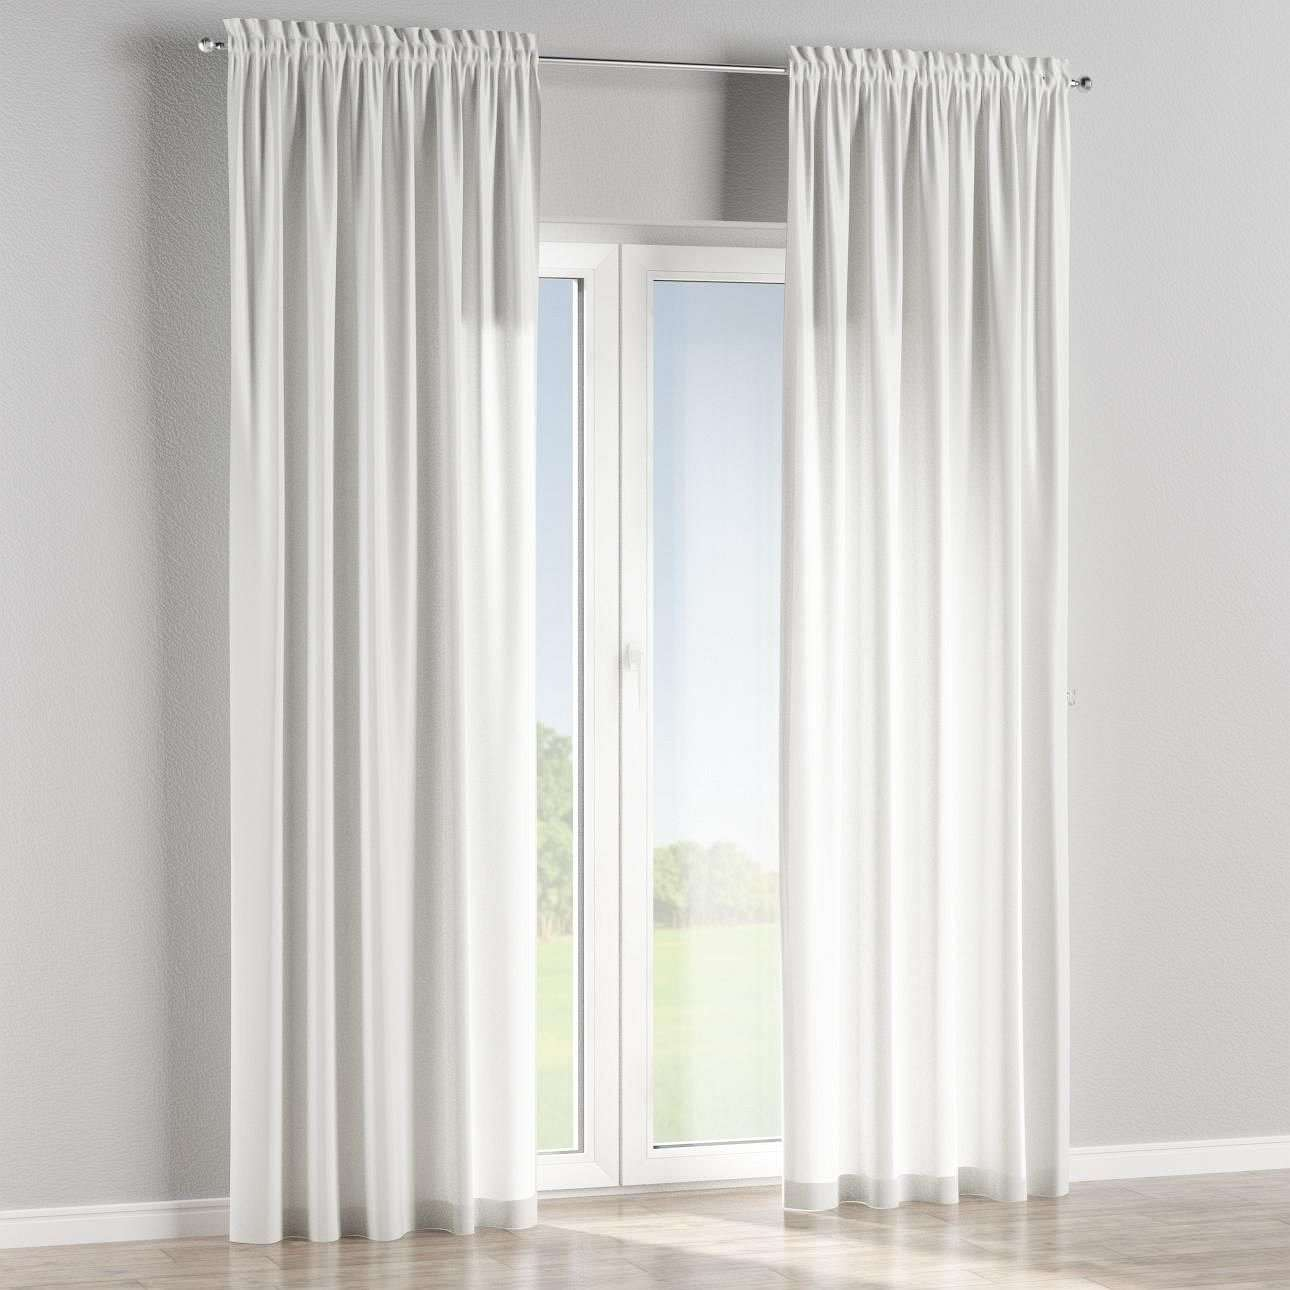 Slot and frill lined curtains in collection Cardiff, fabric: 136-31